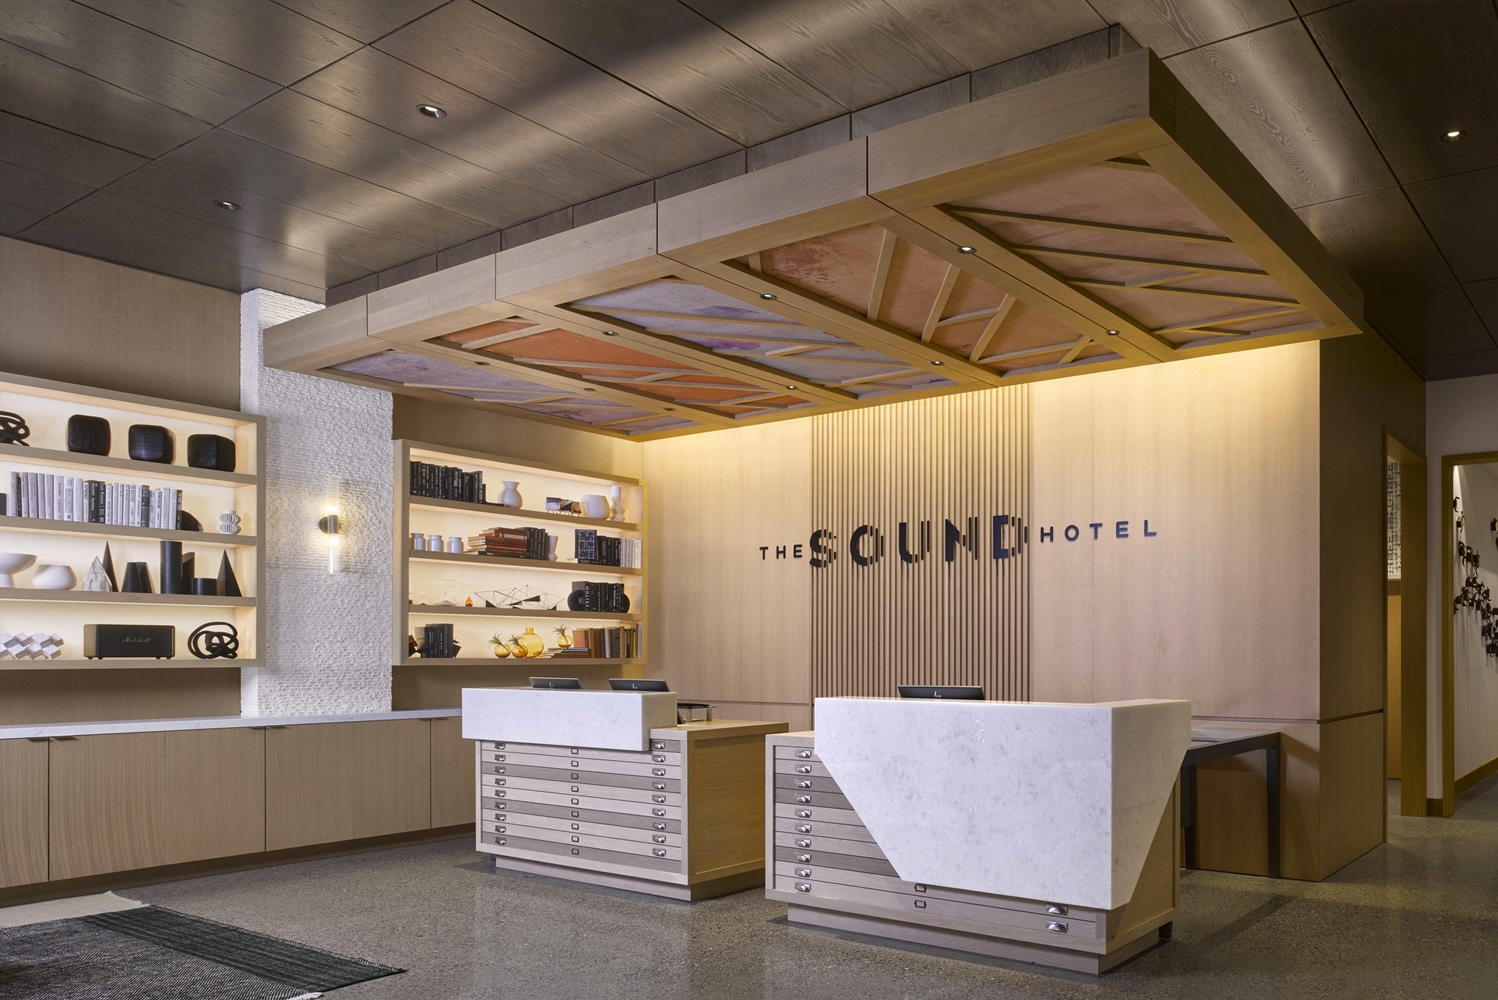 Hospitality interior design firm Hirsch Bedner Associates (HBA) completed the design of The Sound Hotel Seattle Belltown, Tapestry Collection by Hilton.